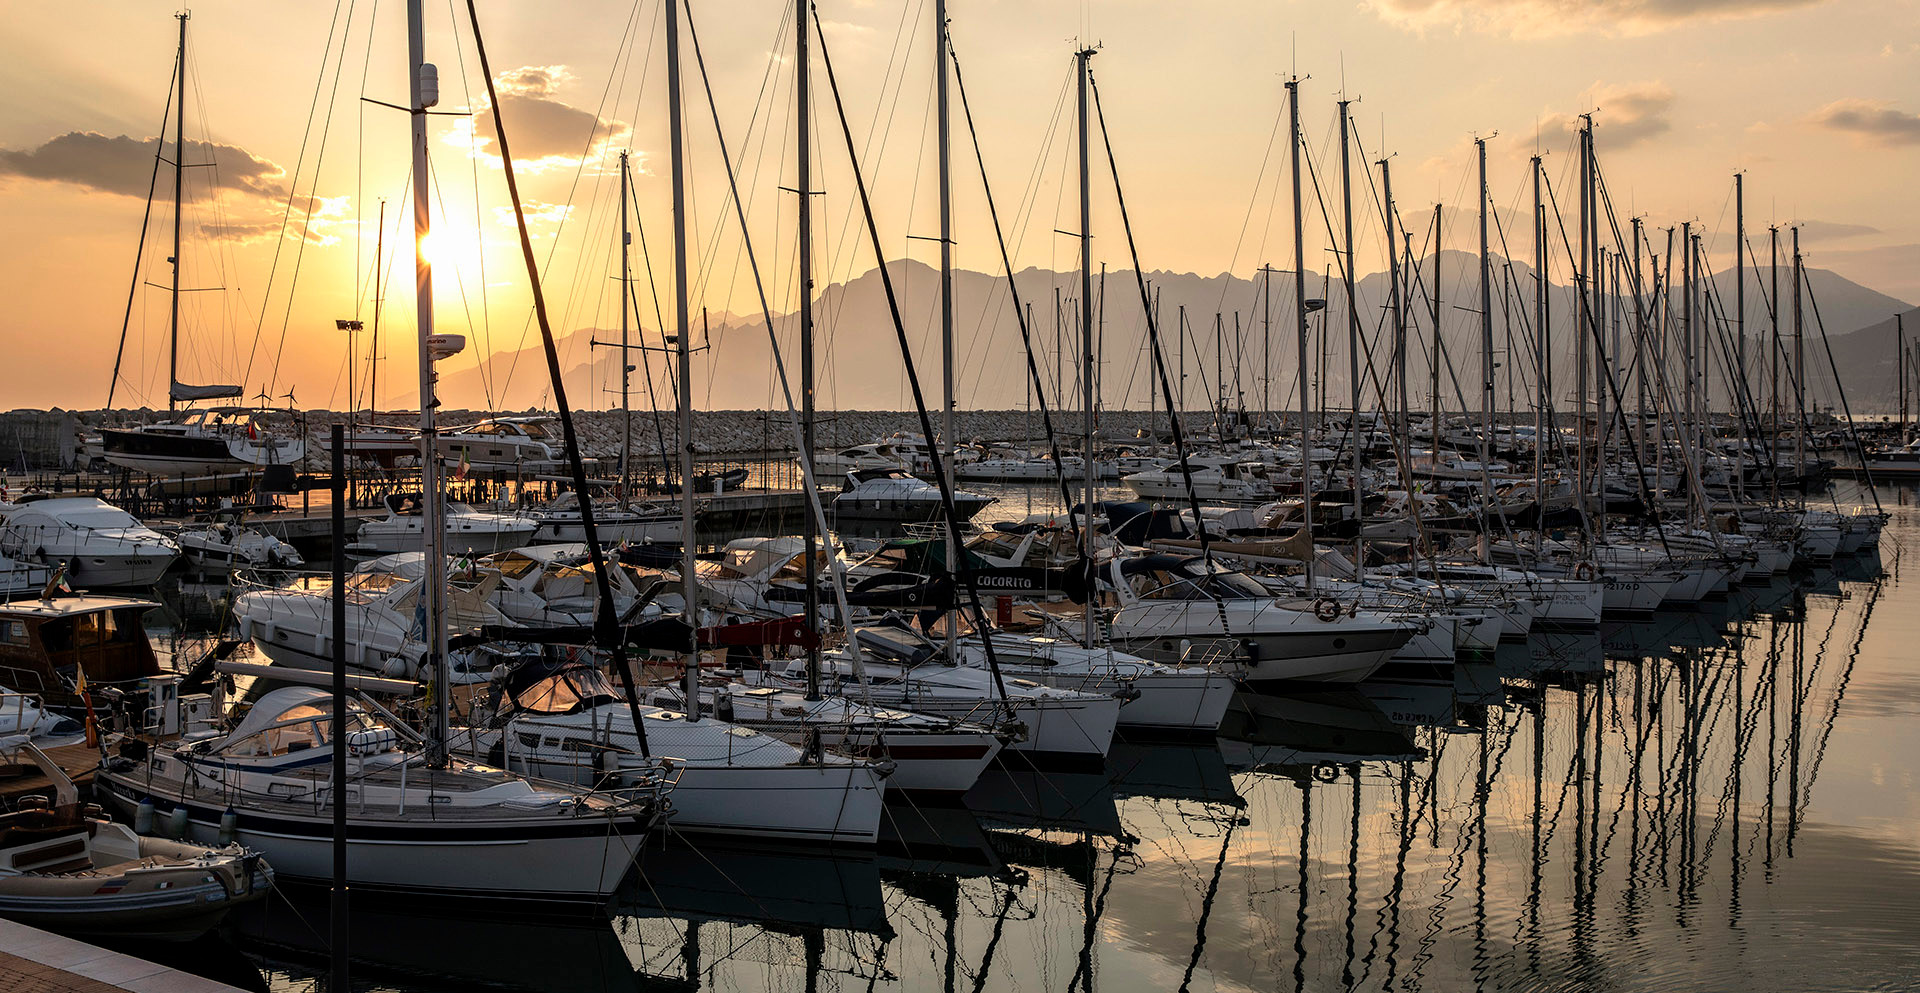 Marina d'Arechi - Salerno Port Village